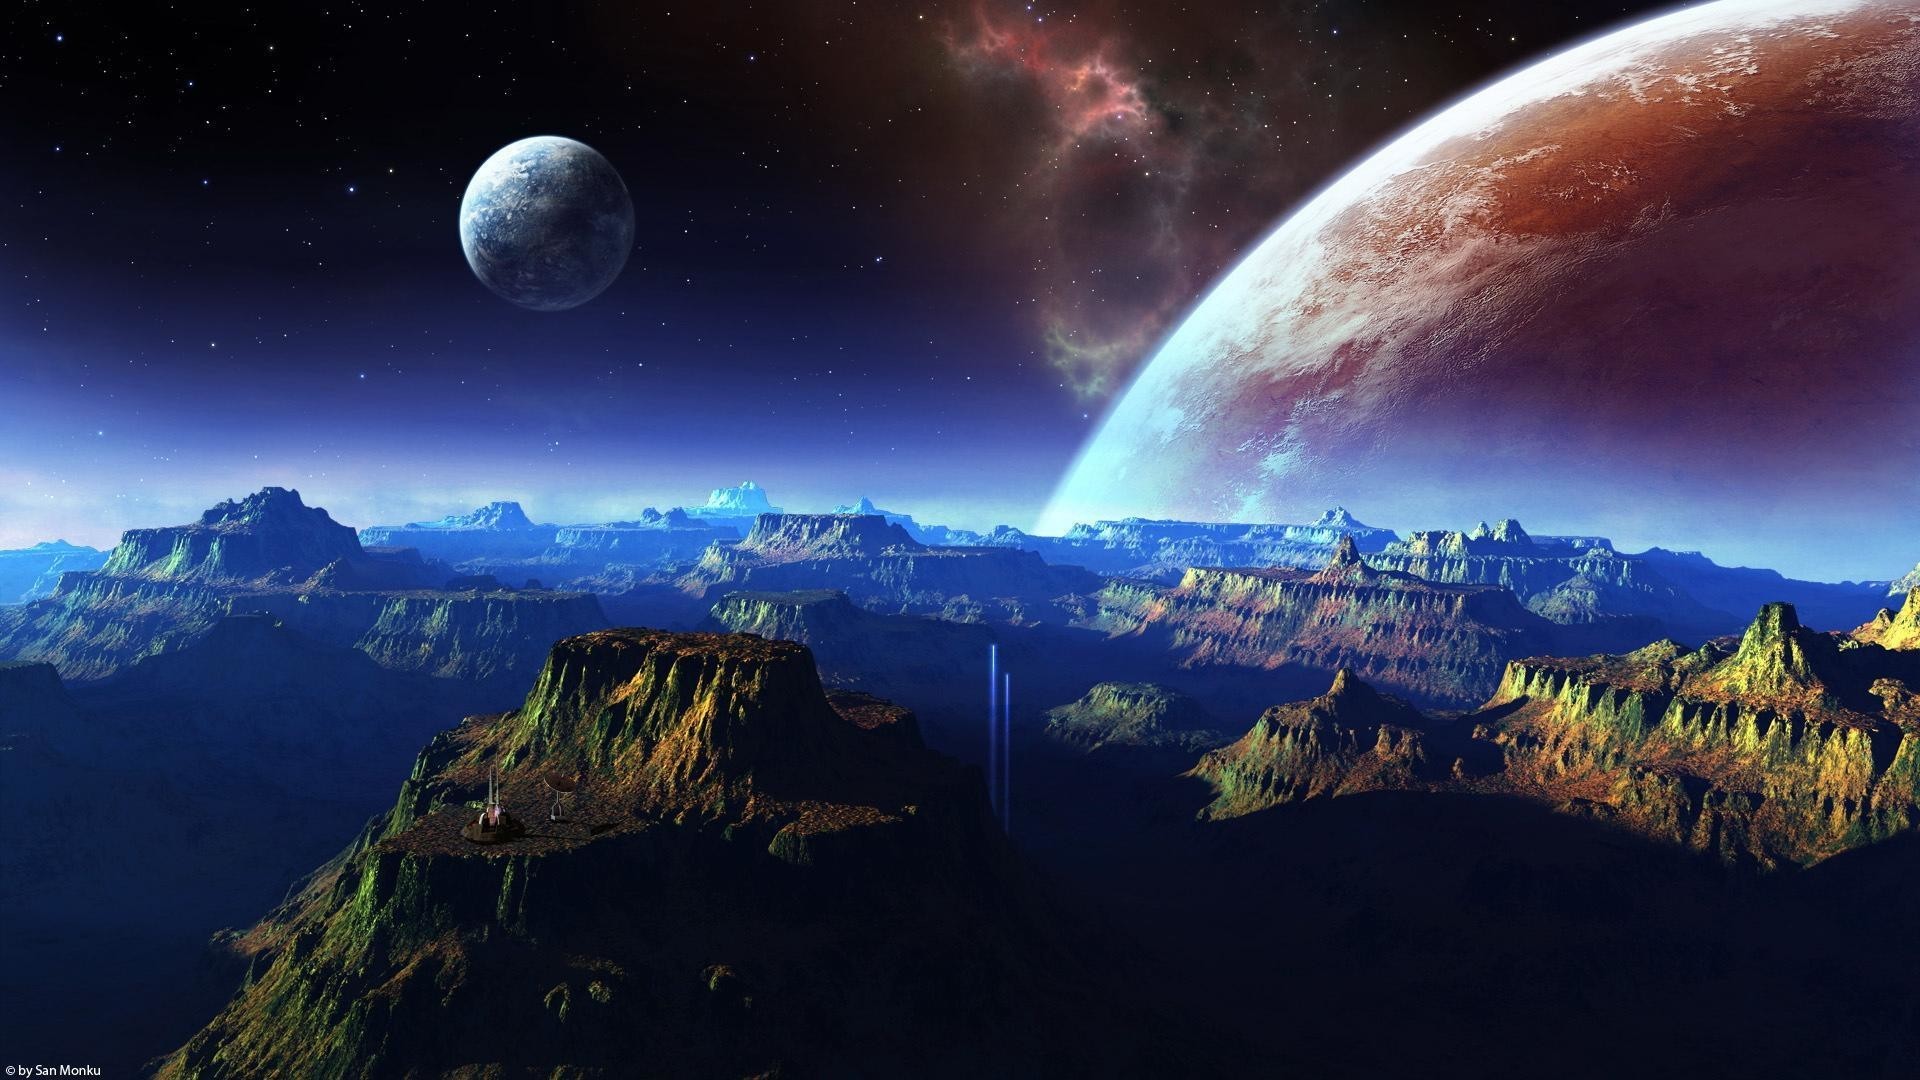 Hd wallpaper space 1080p